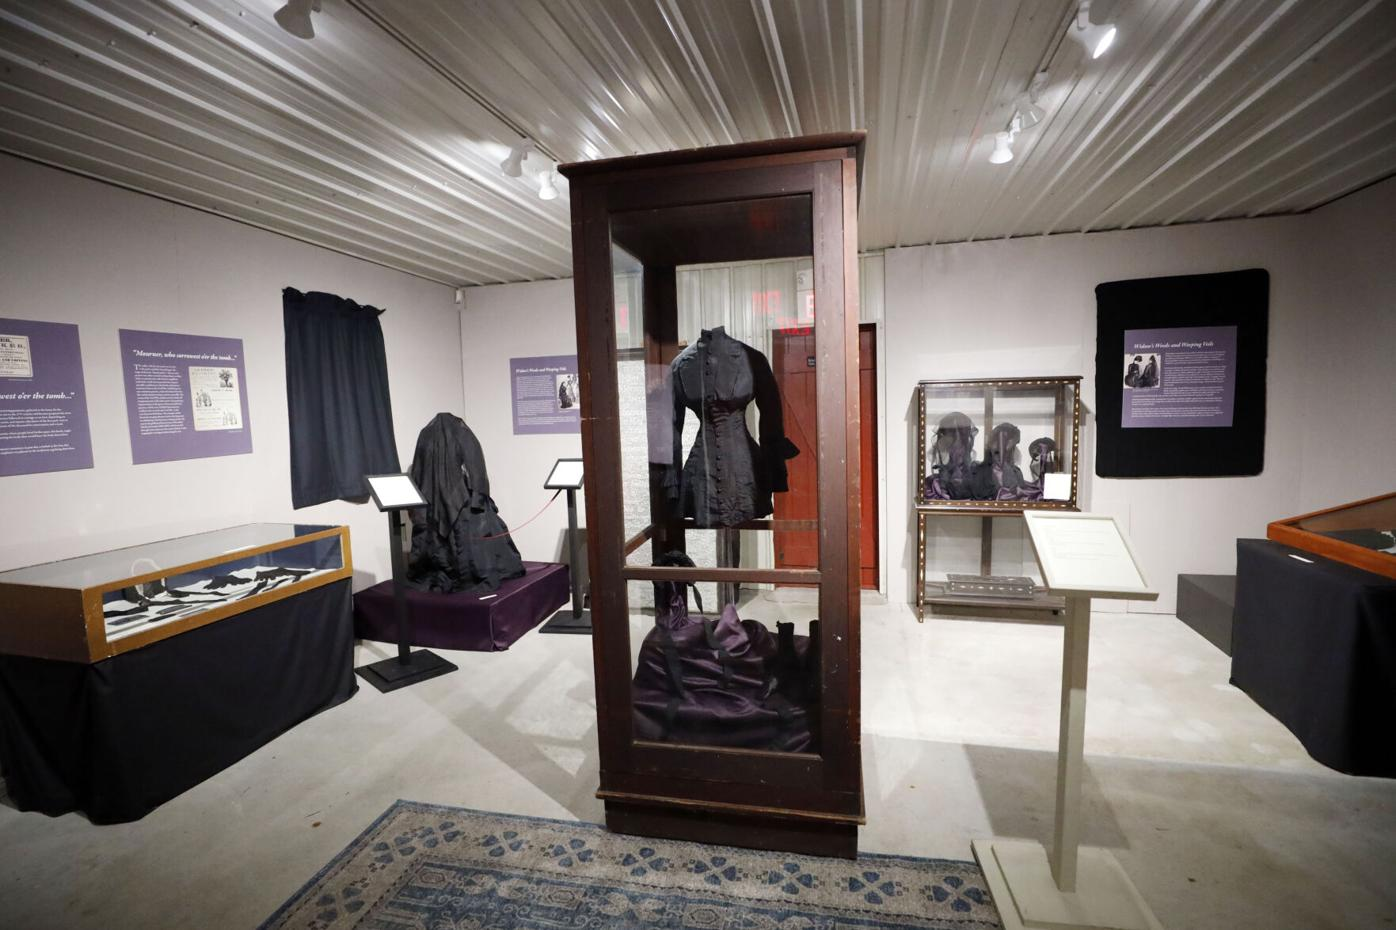 mourning exhibit at Arrowhead